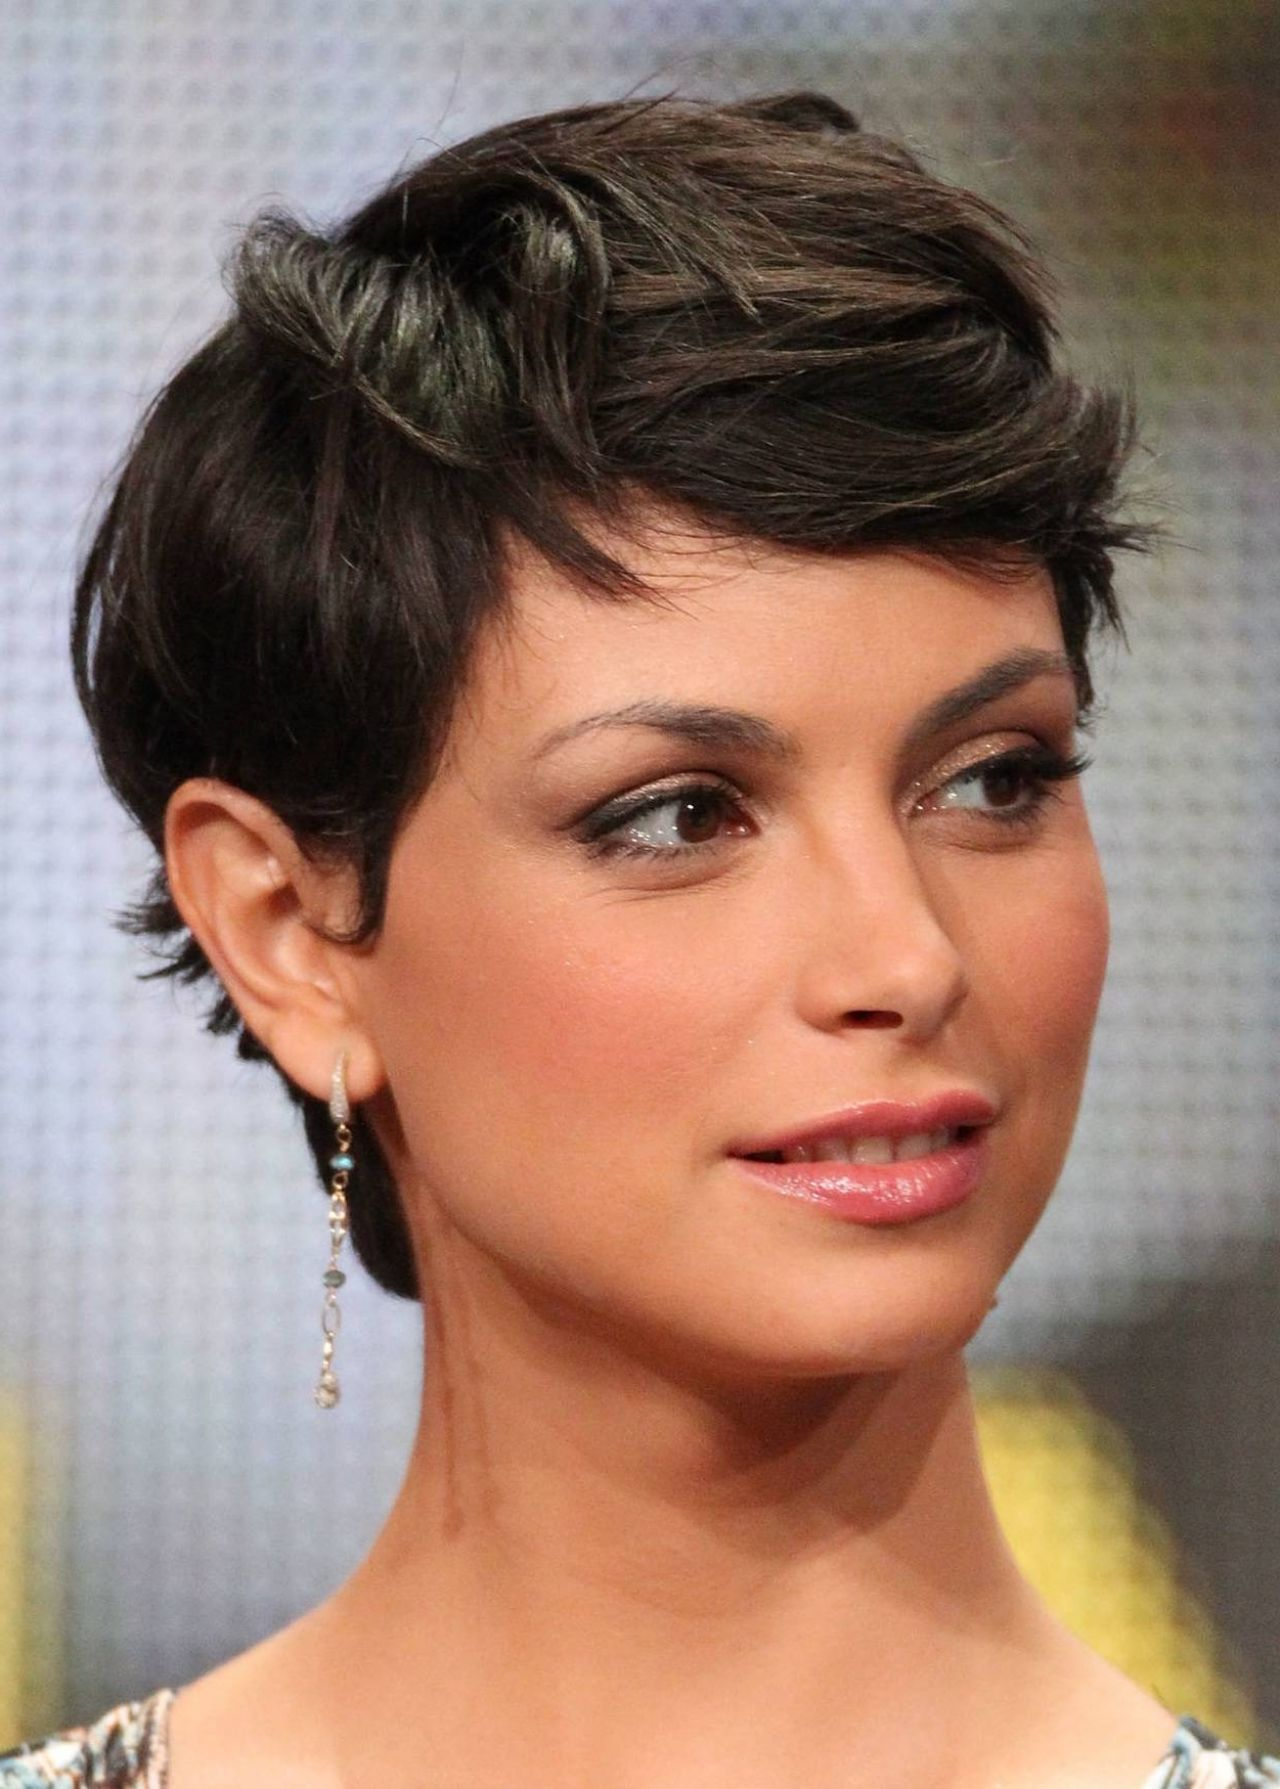 Image result for pixie cut oval face shape